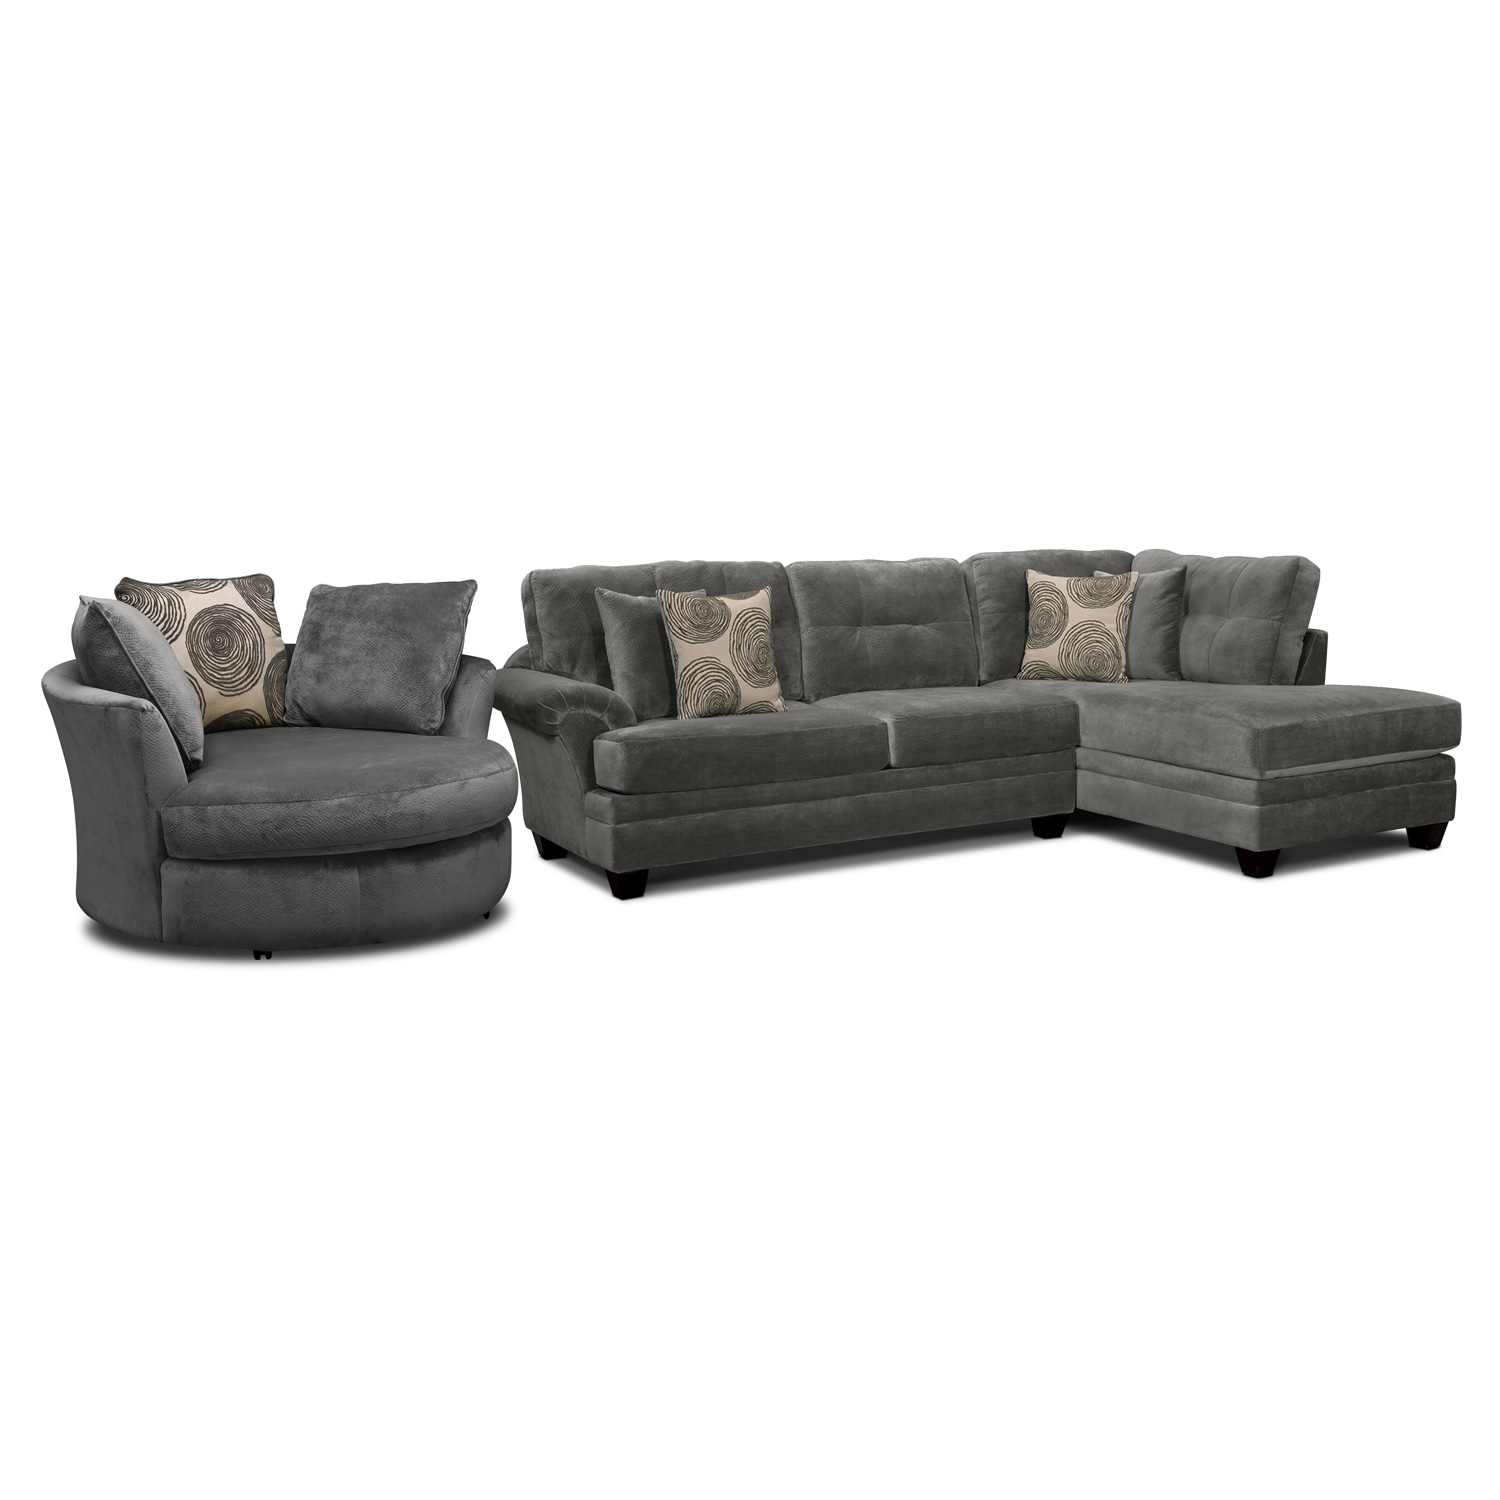 Ii 2 pc sectional and swivel chair american signature furniture - Cordelle 2 Piece Right Facing Chaise Sectional And Swivel Chair Set Gray